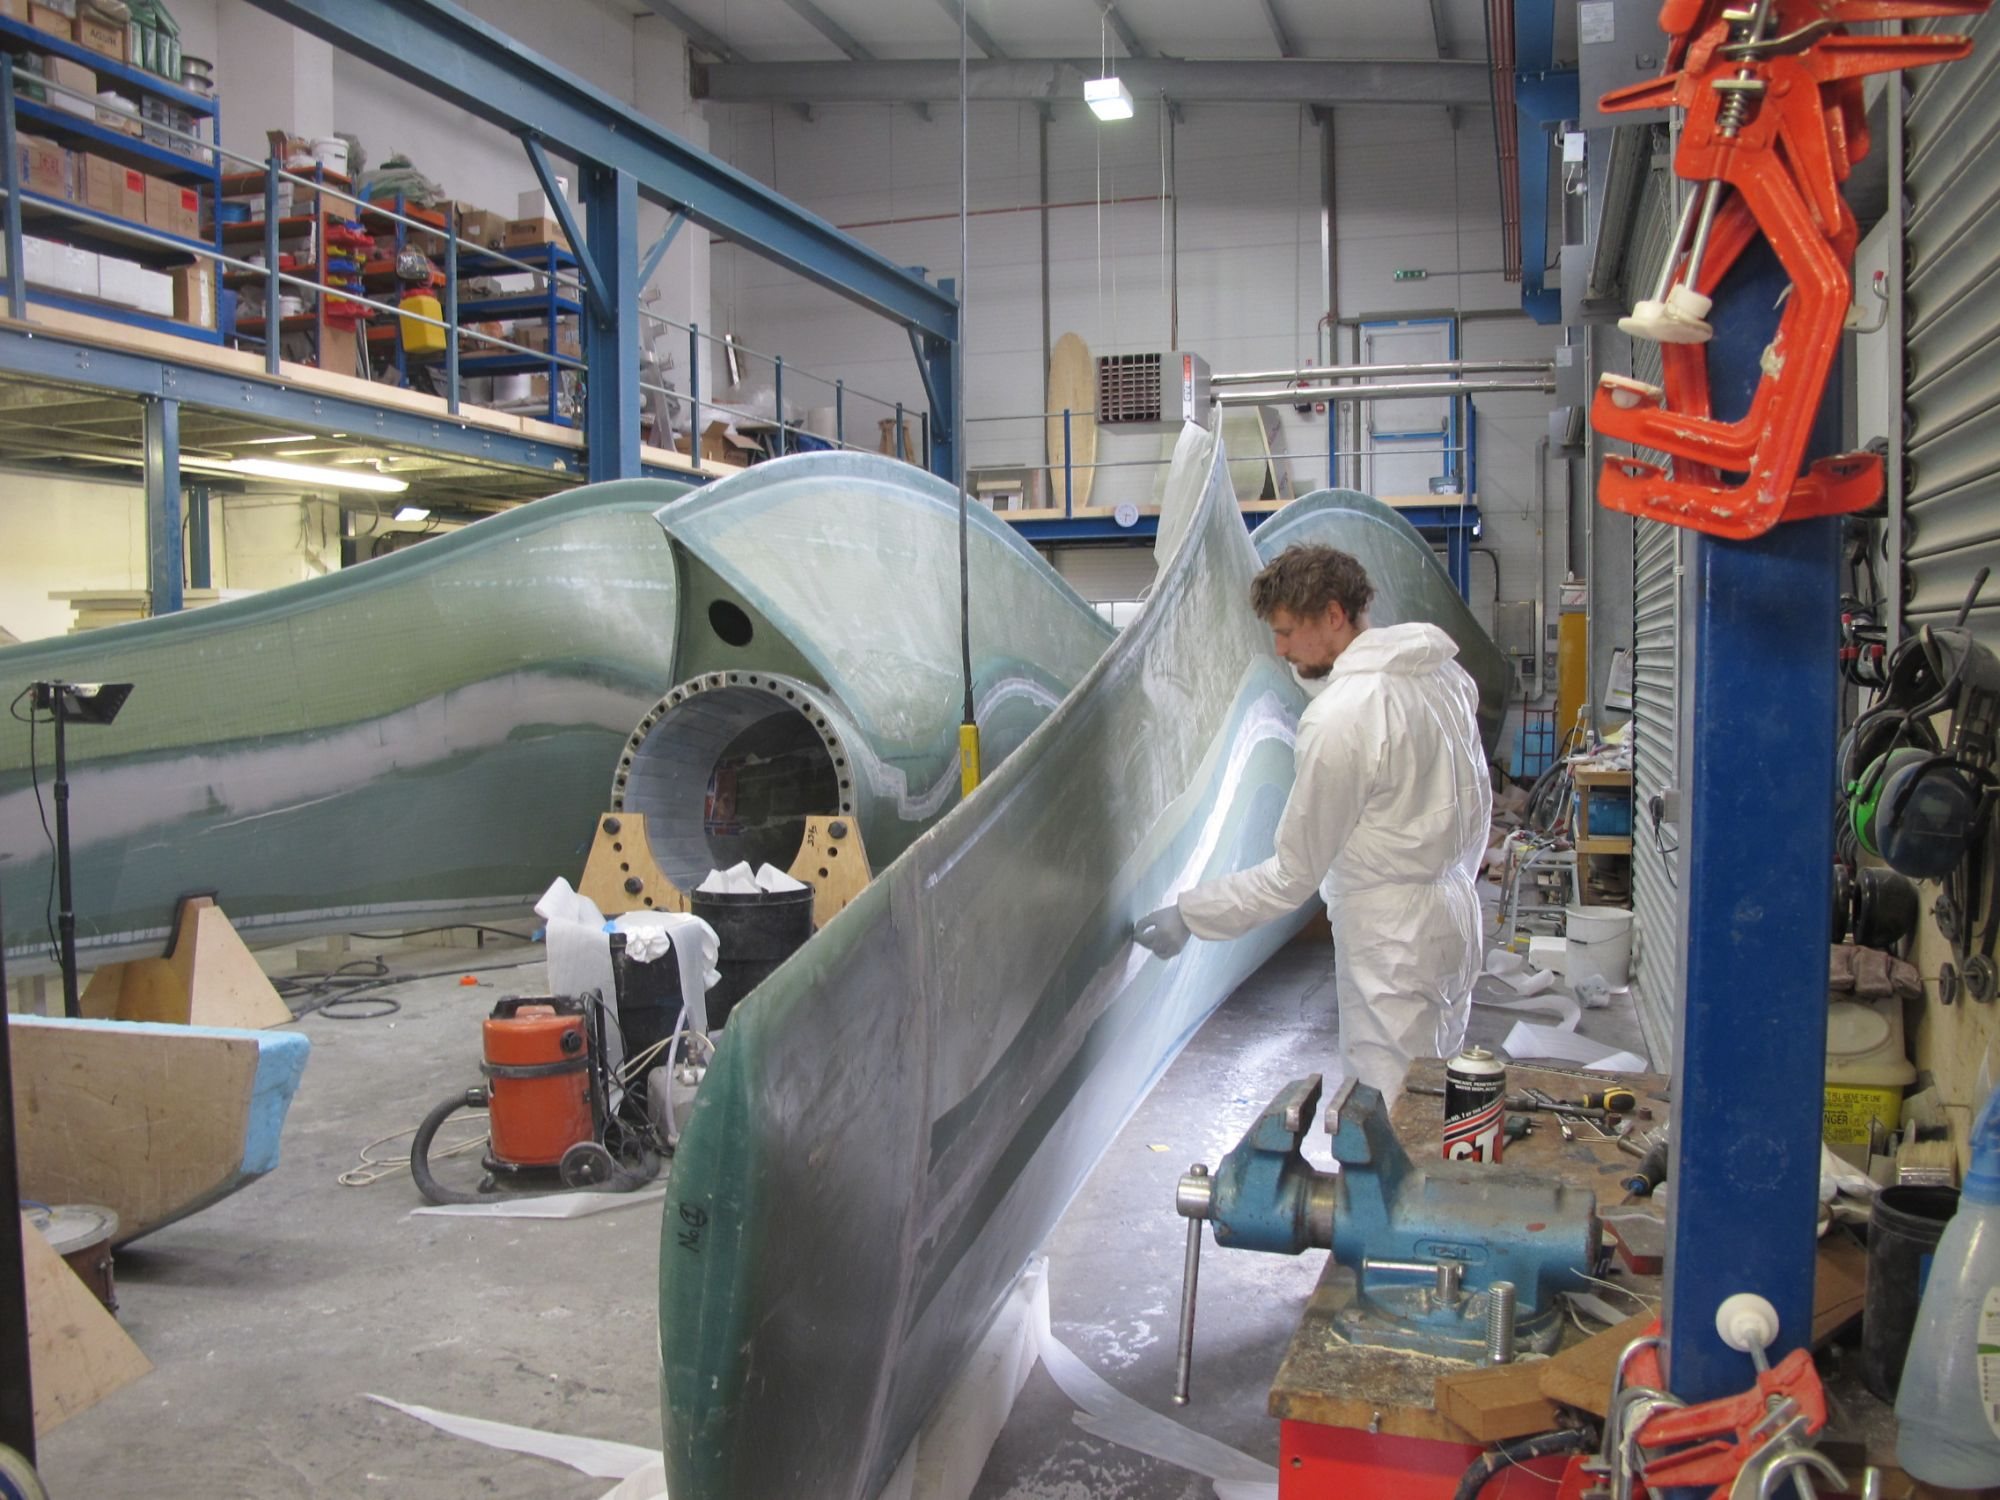 Tidal Turbine Blades under construction